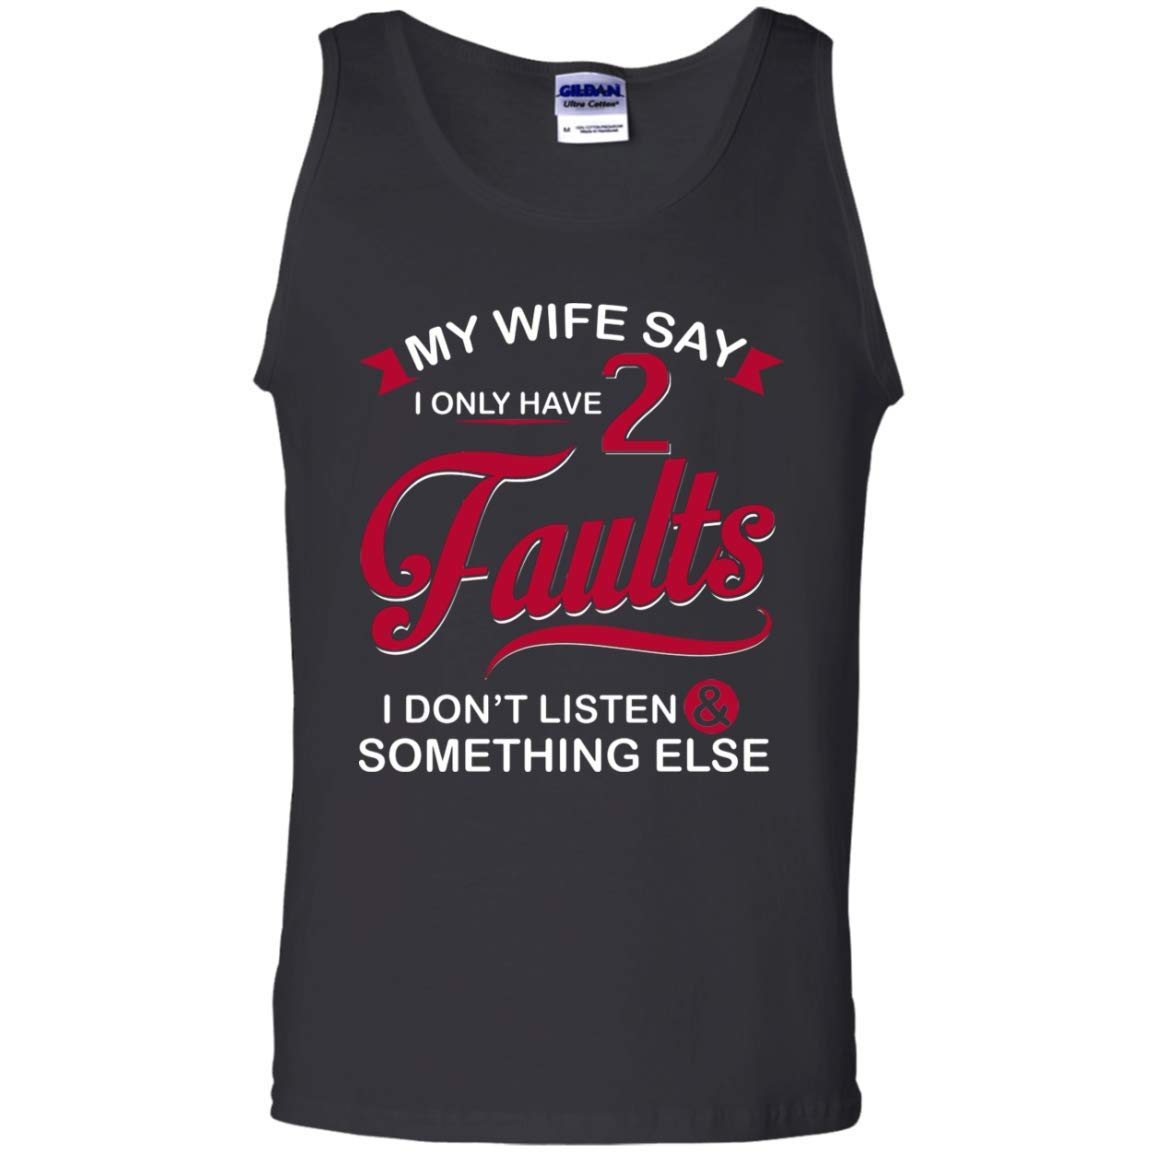 Teely Shop Mens My Wife Says I Only Have 2 Faults I Dont Listen:G220 Gildan 100/% Cotton Tank Top